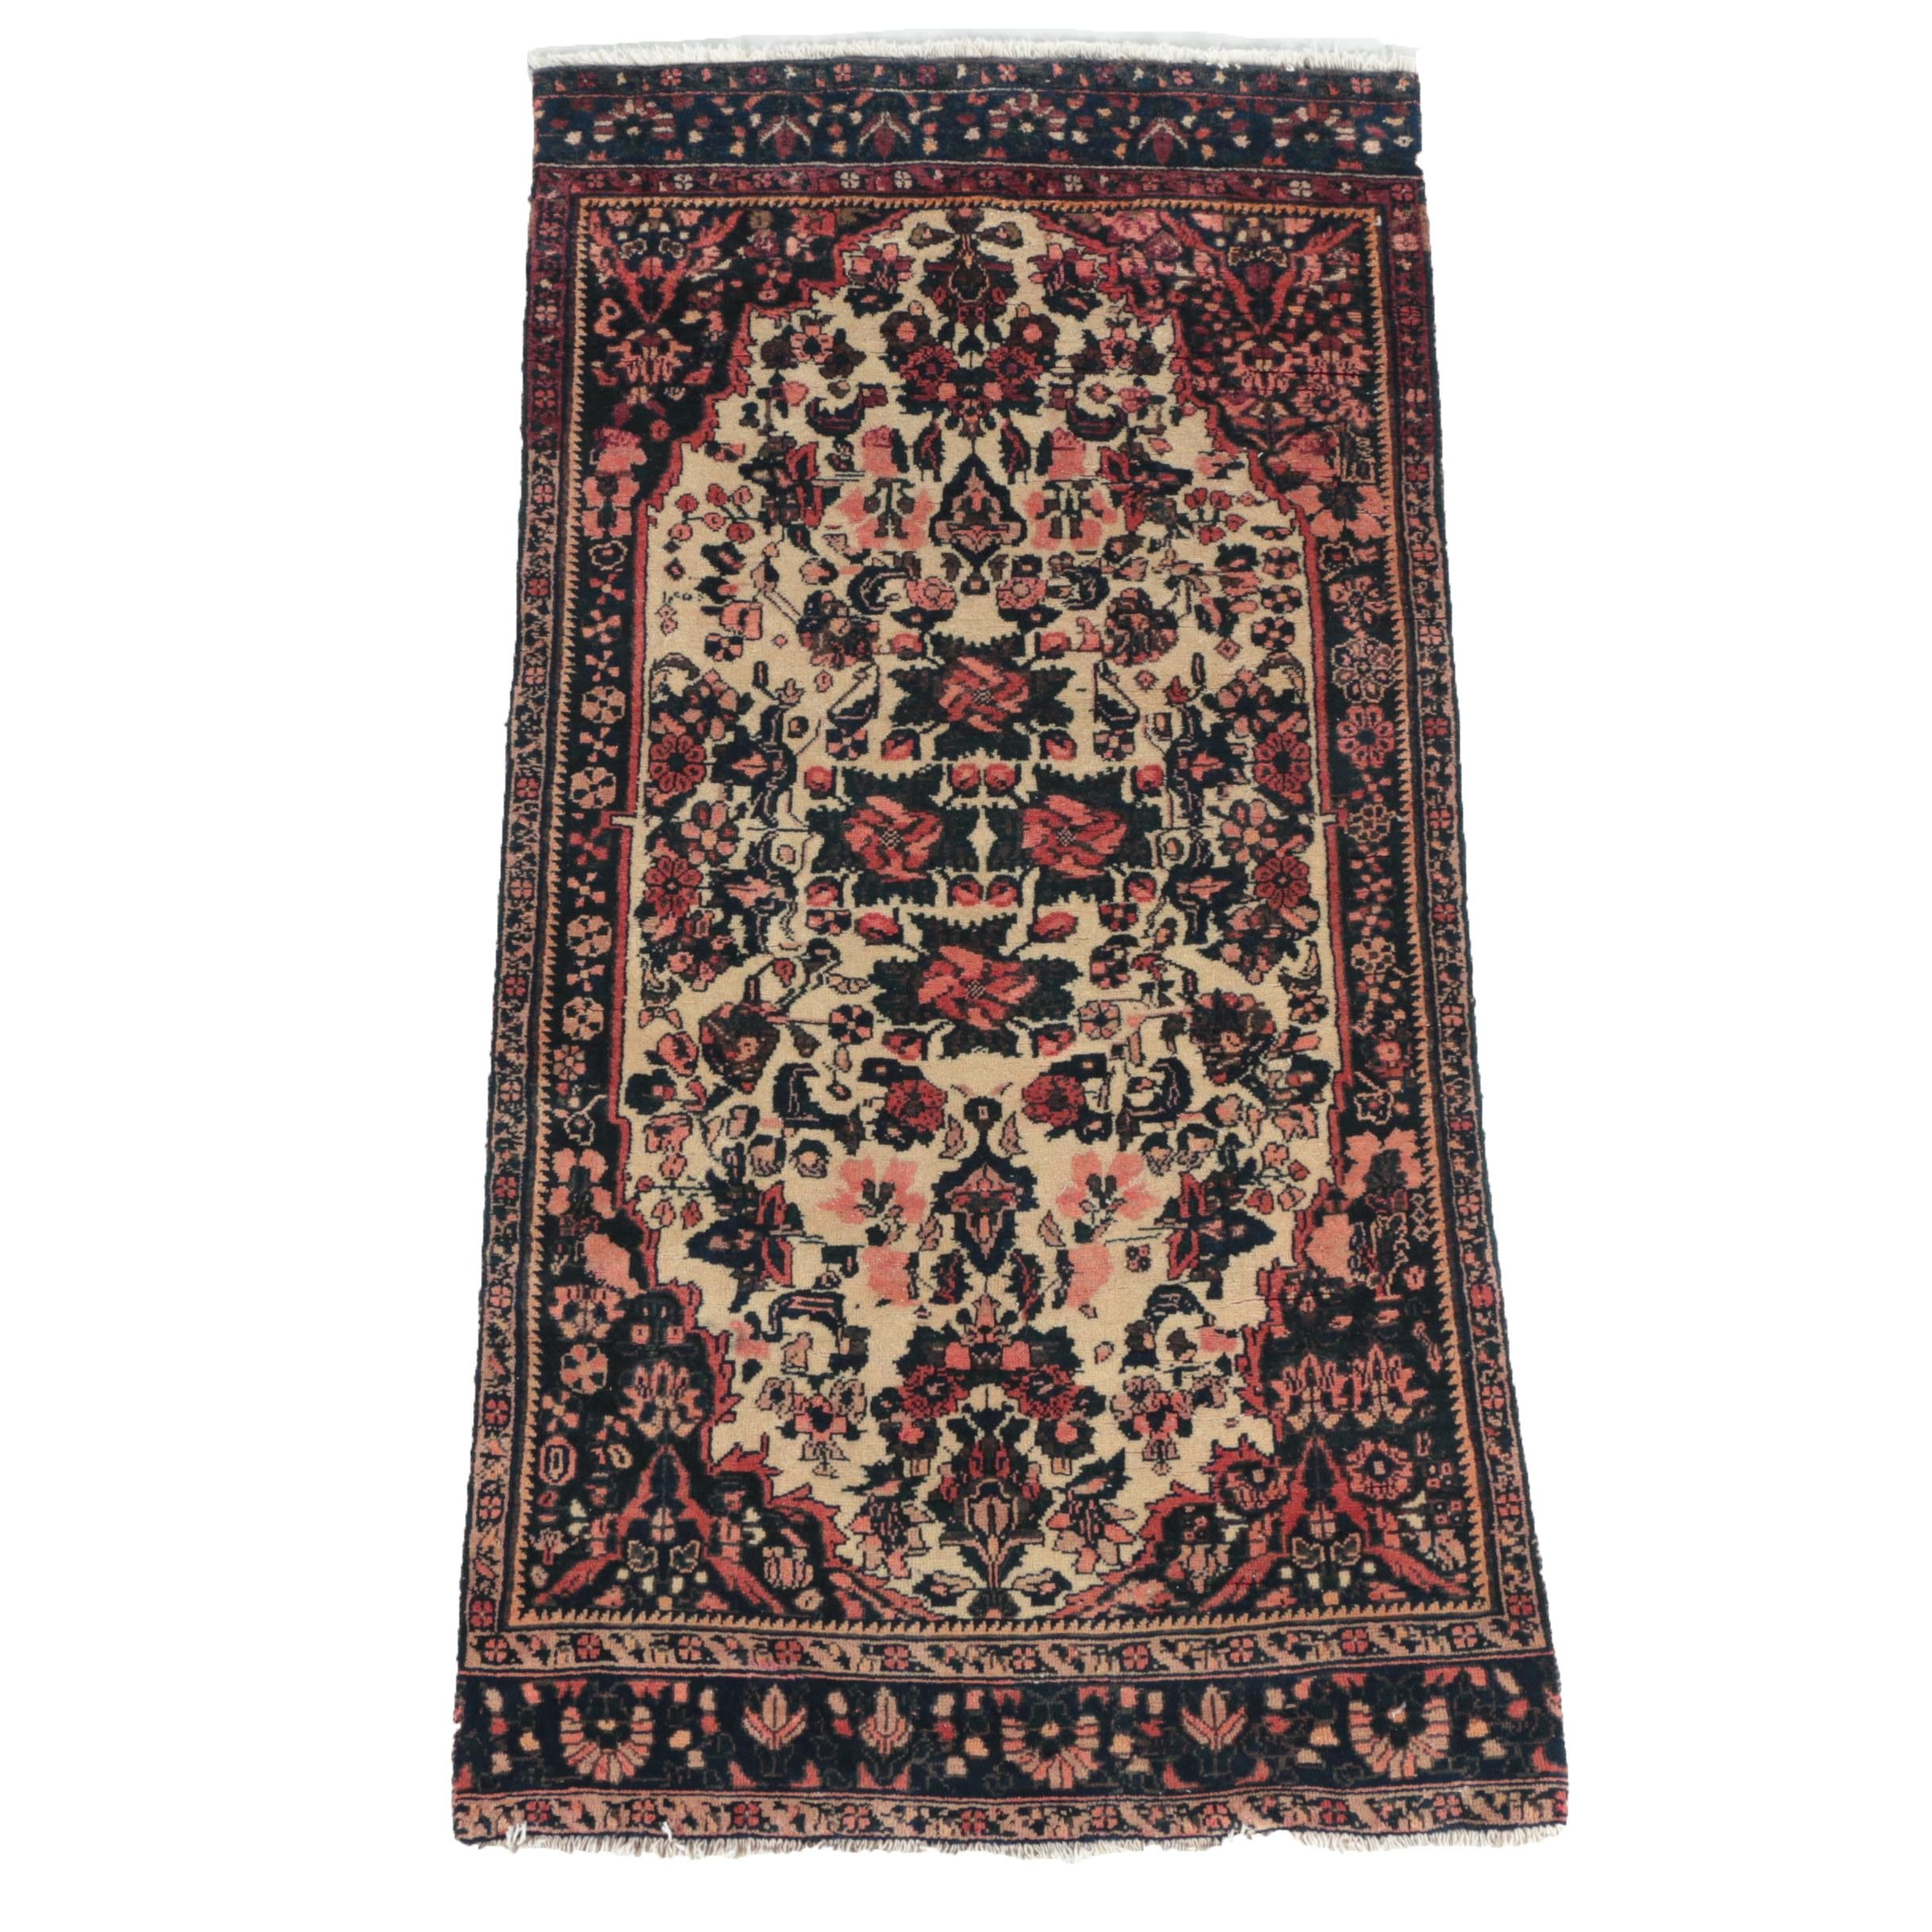 Hand-Knotted Karabagh-Style Wool Area Rug